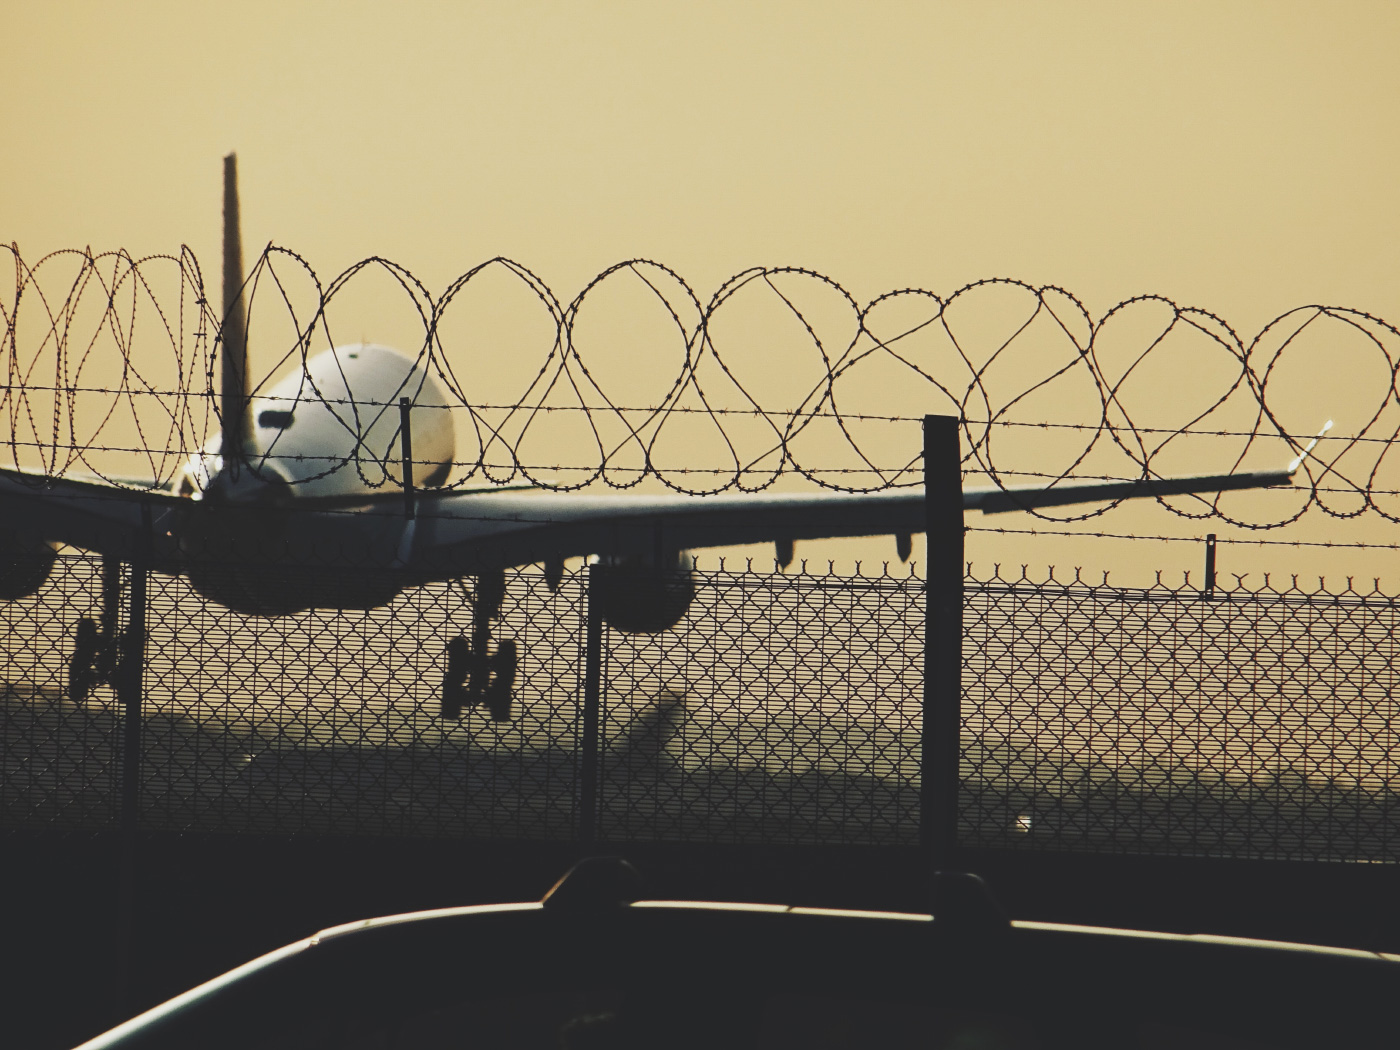 Photo of a plane taking off behind a fence at Heathrow Airport